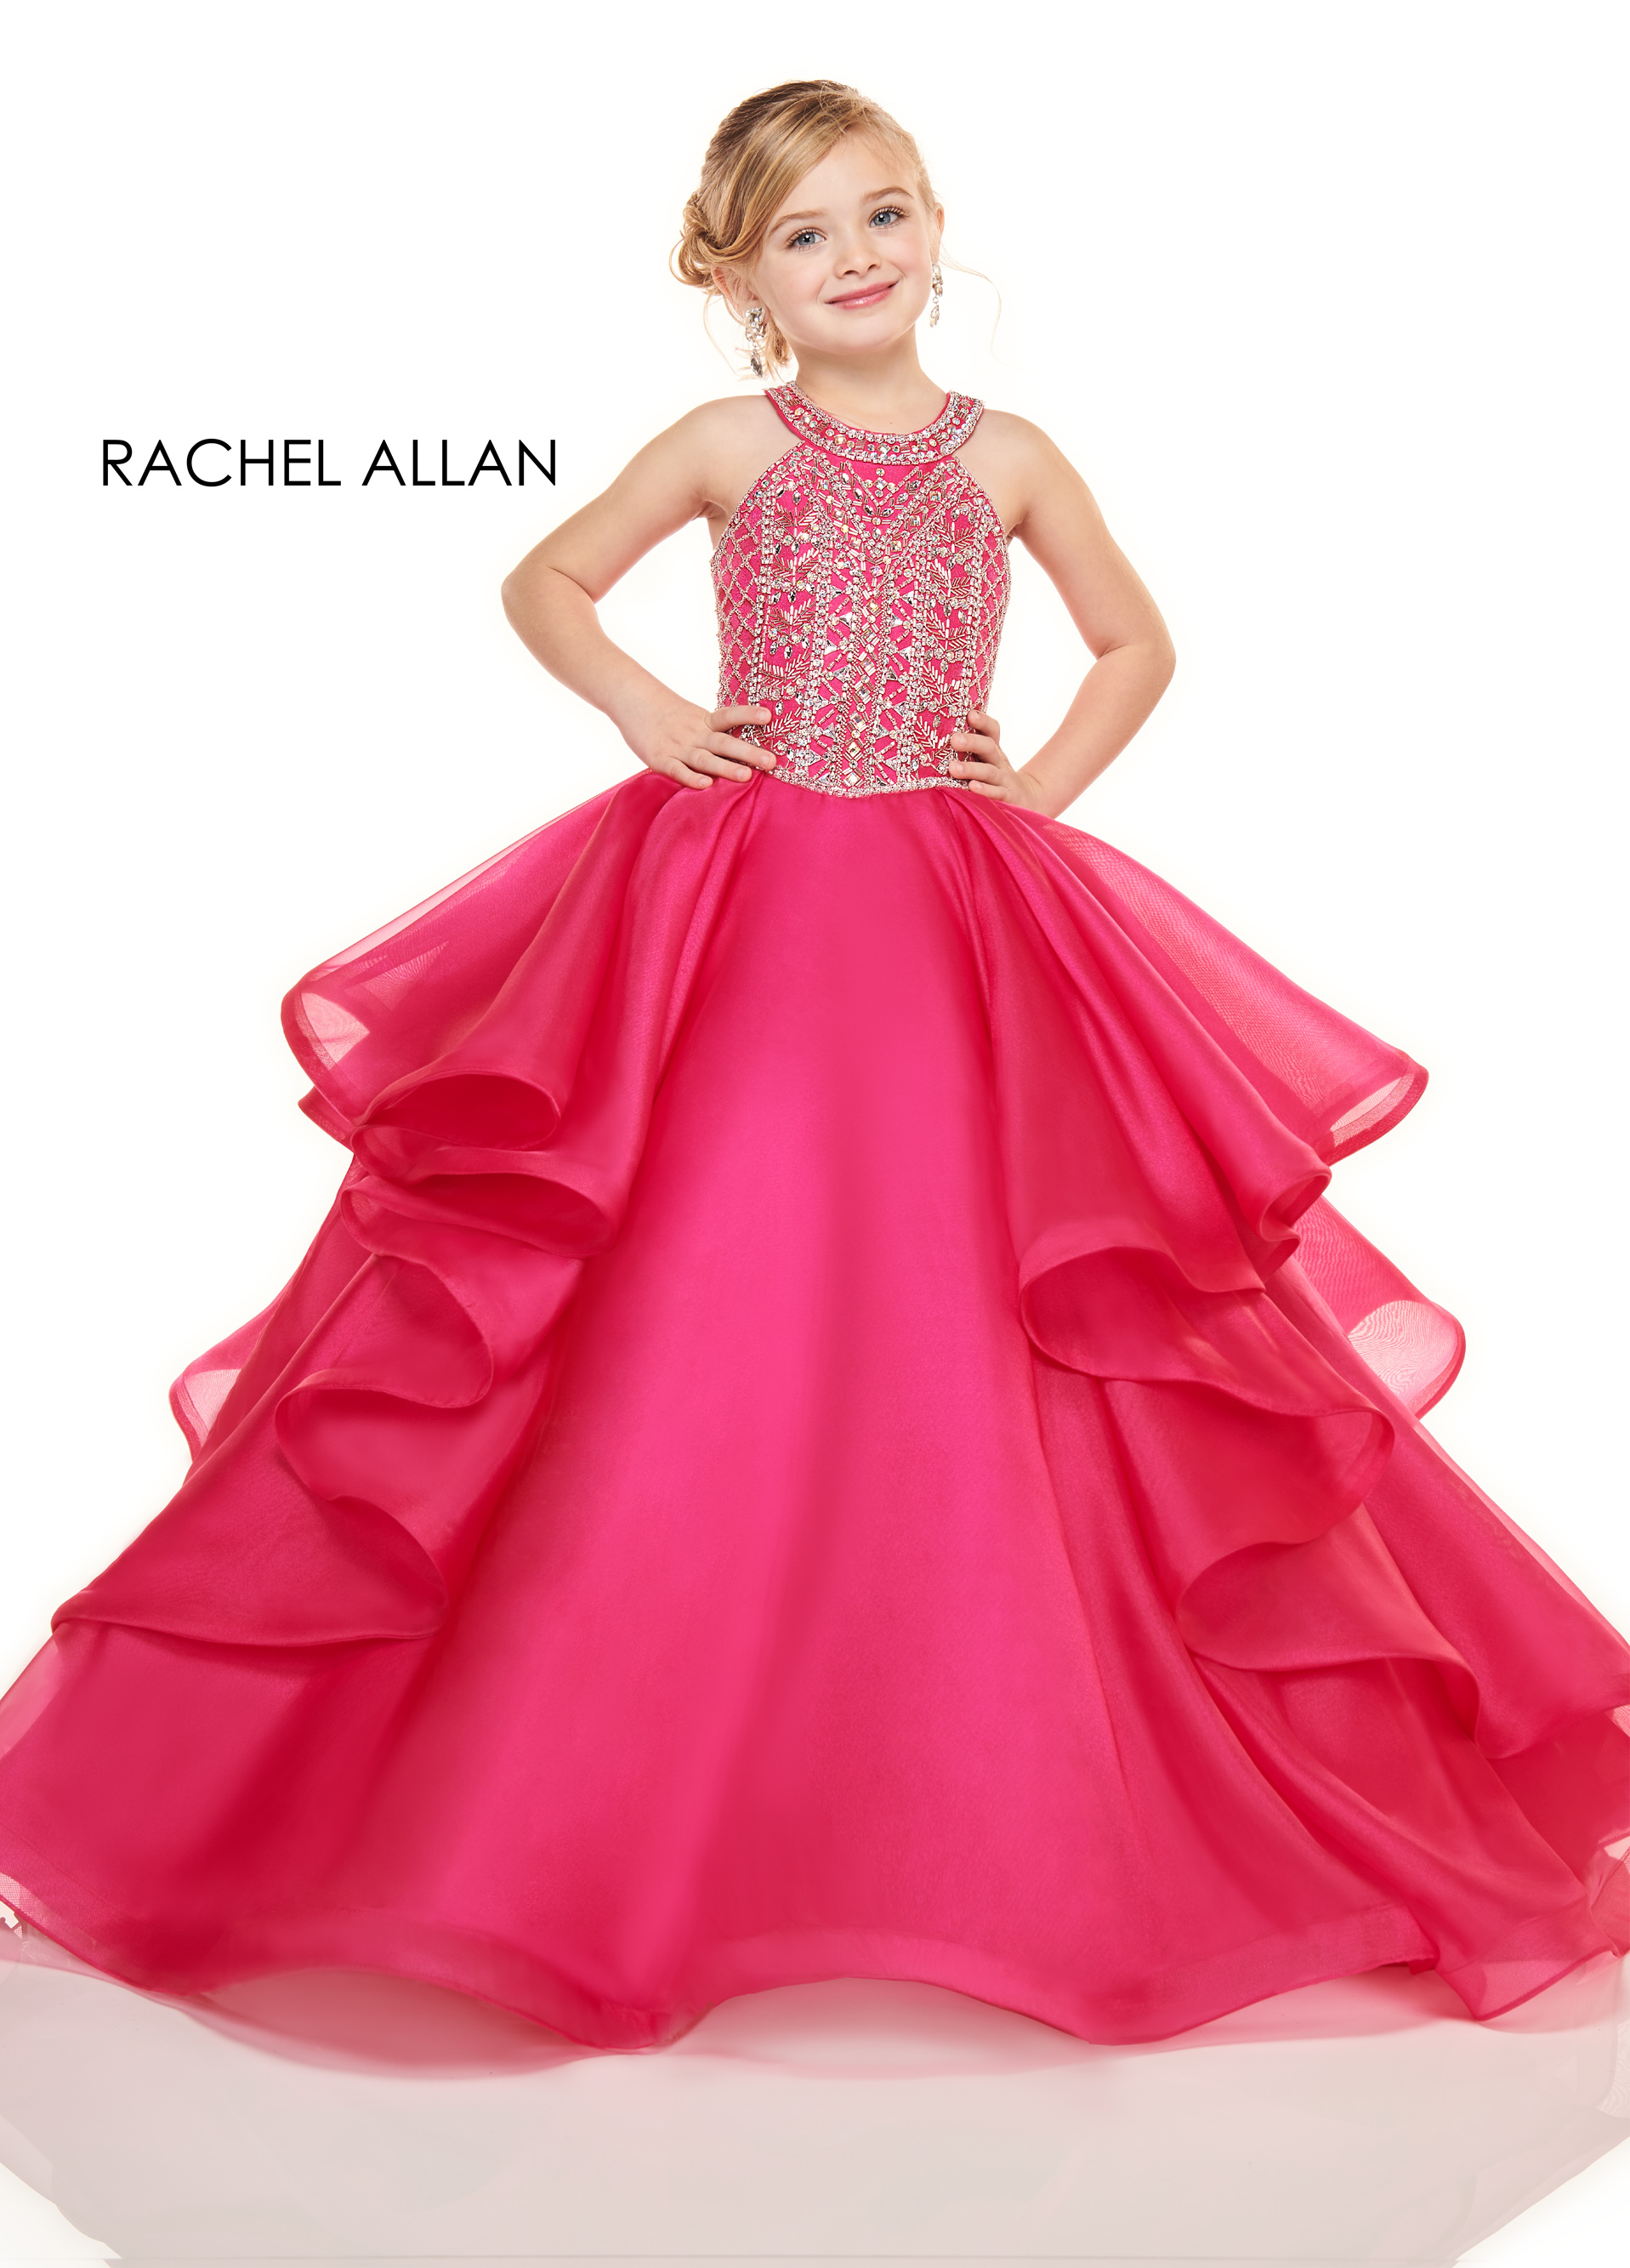 Halter Ball Gowns Little Girl Pageant Dresses in Fuchsia Color